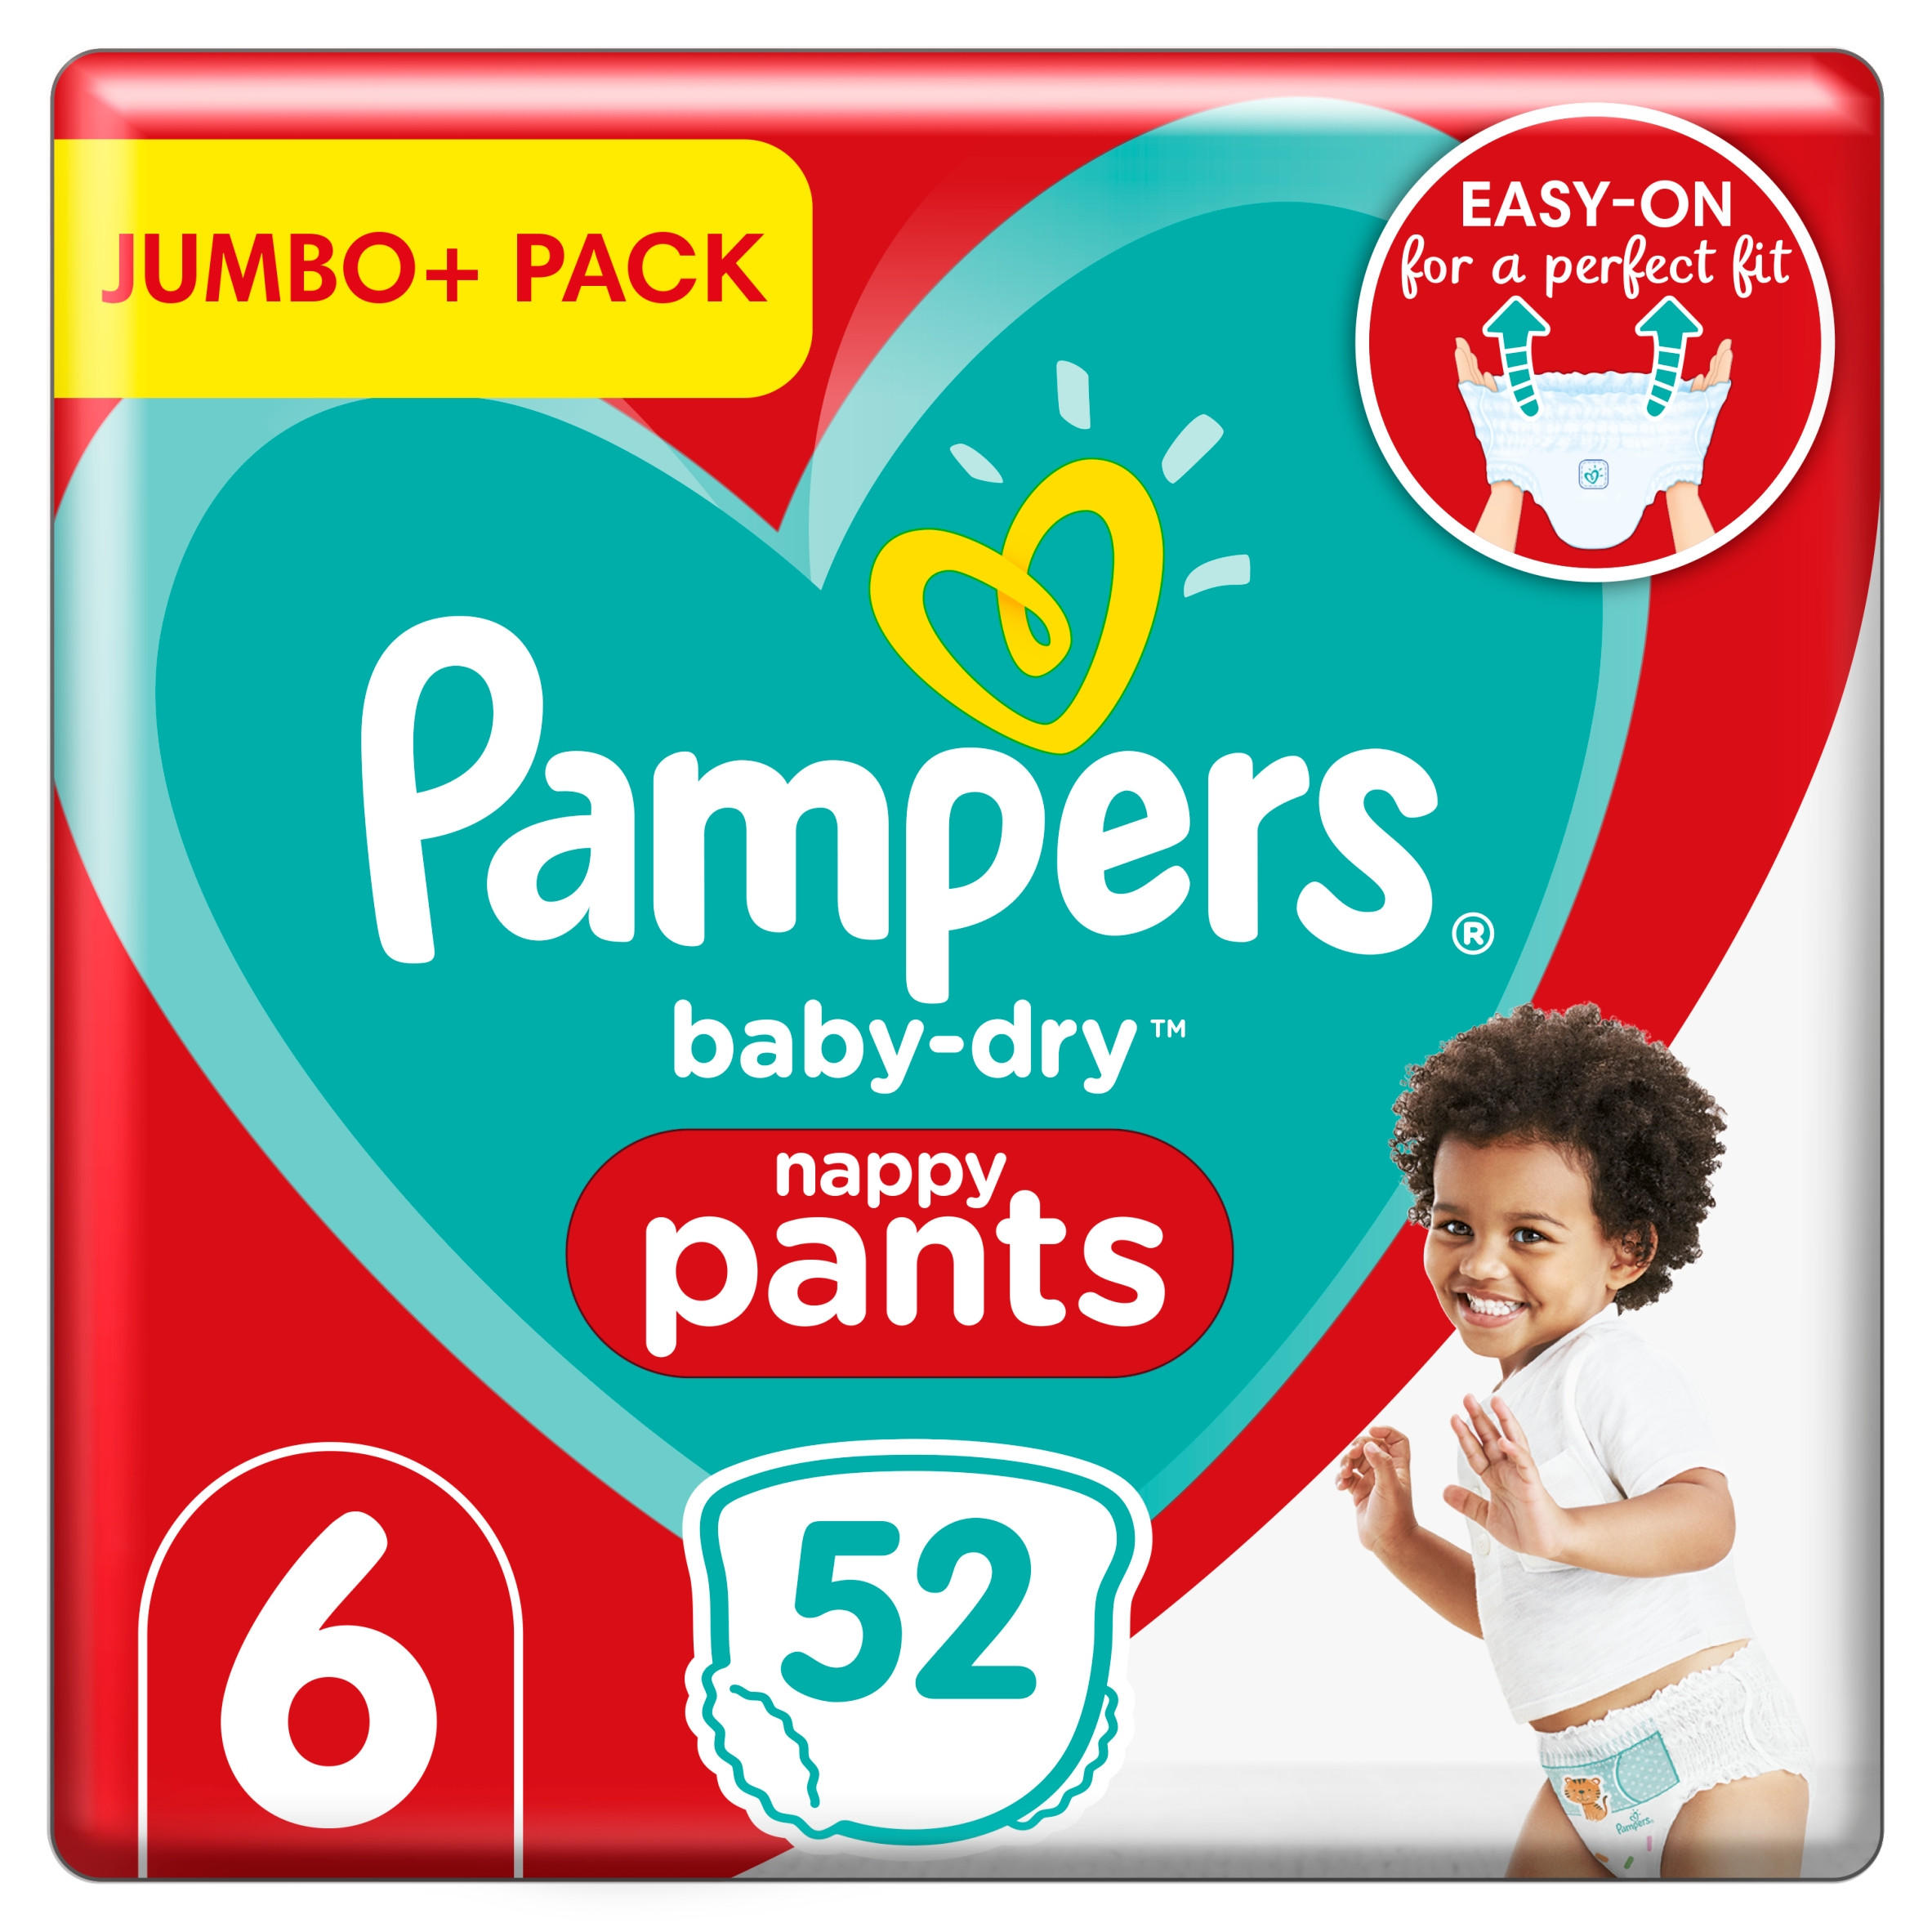 Jumbo+ Pack 12-17kg 60 Nappy Pants Pampers Baby-Dry Nappy Pants Size 5